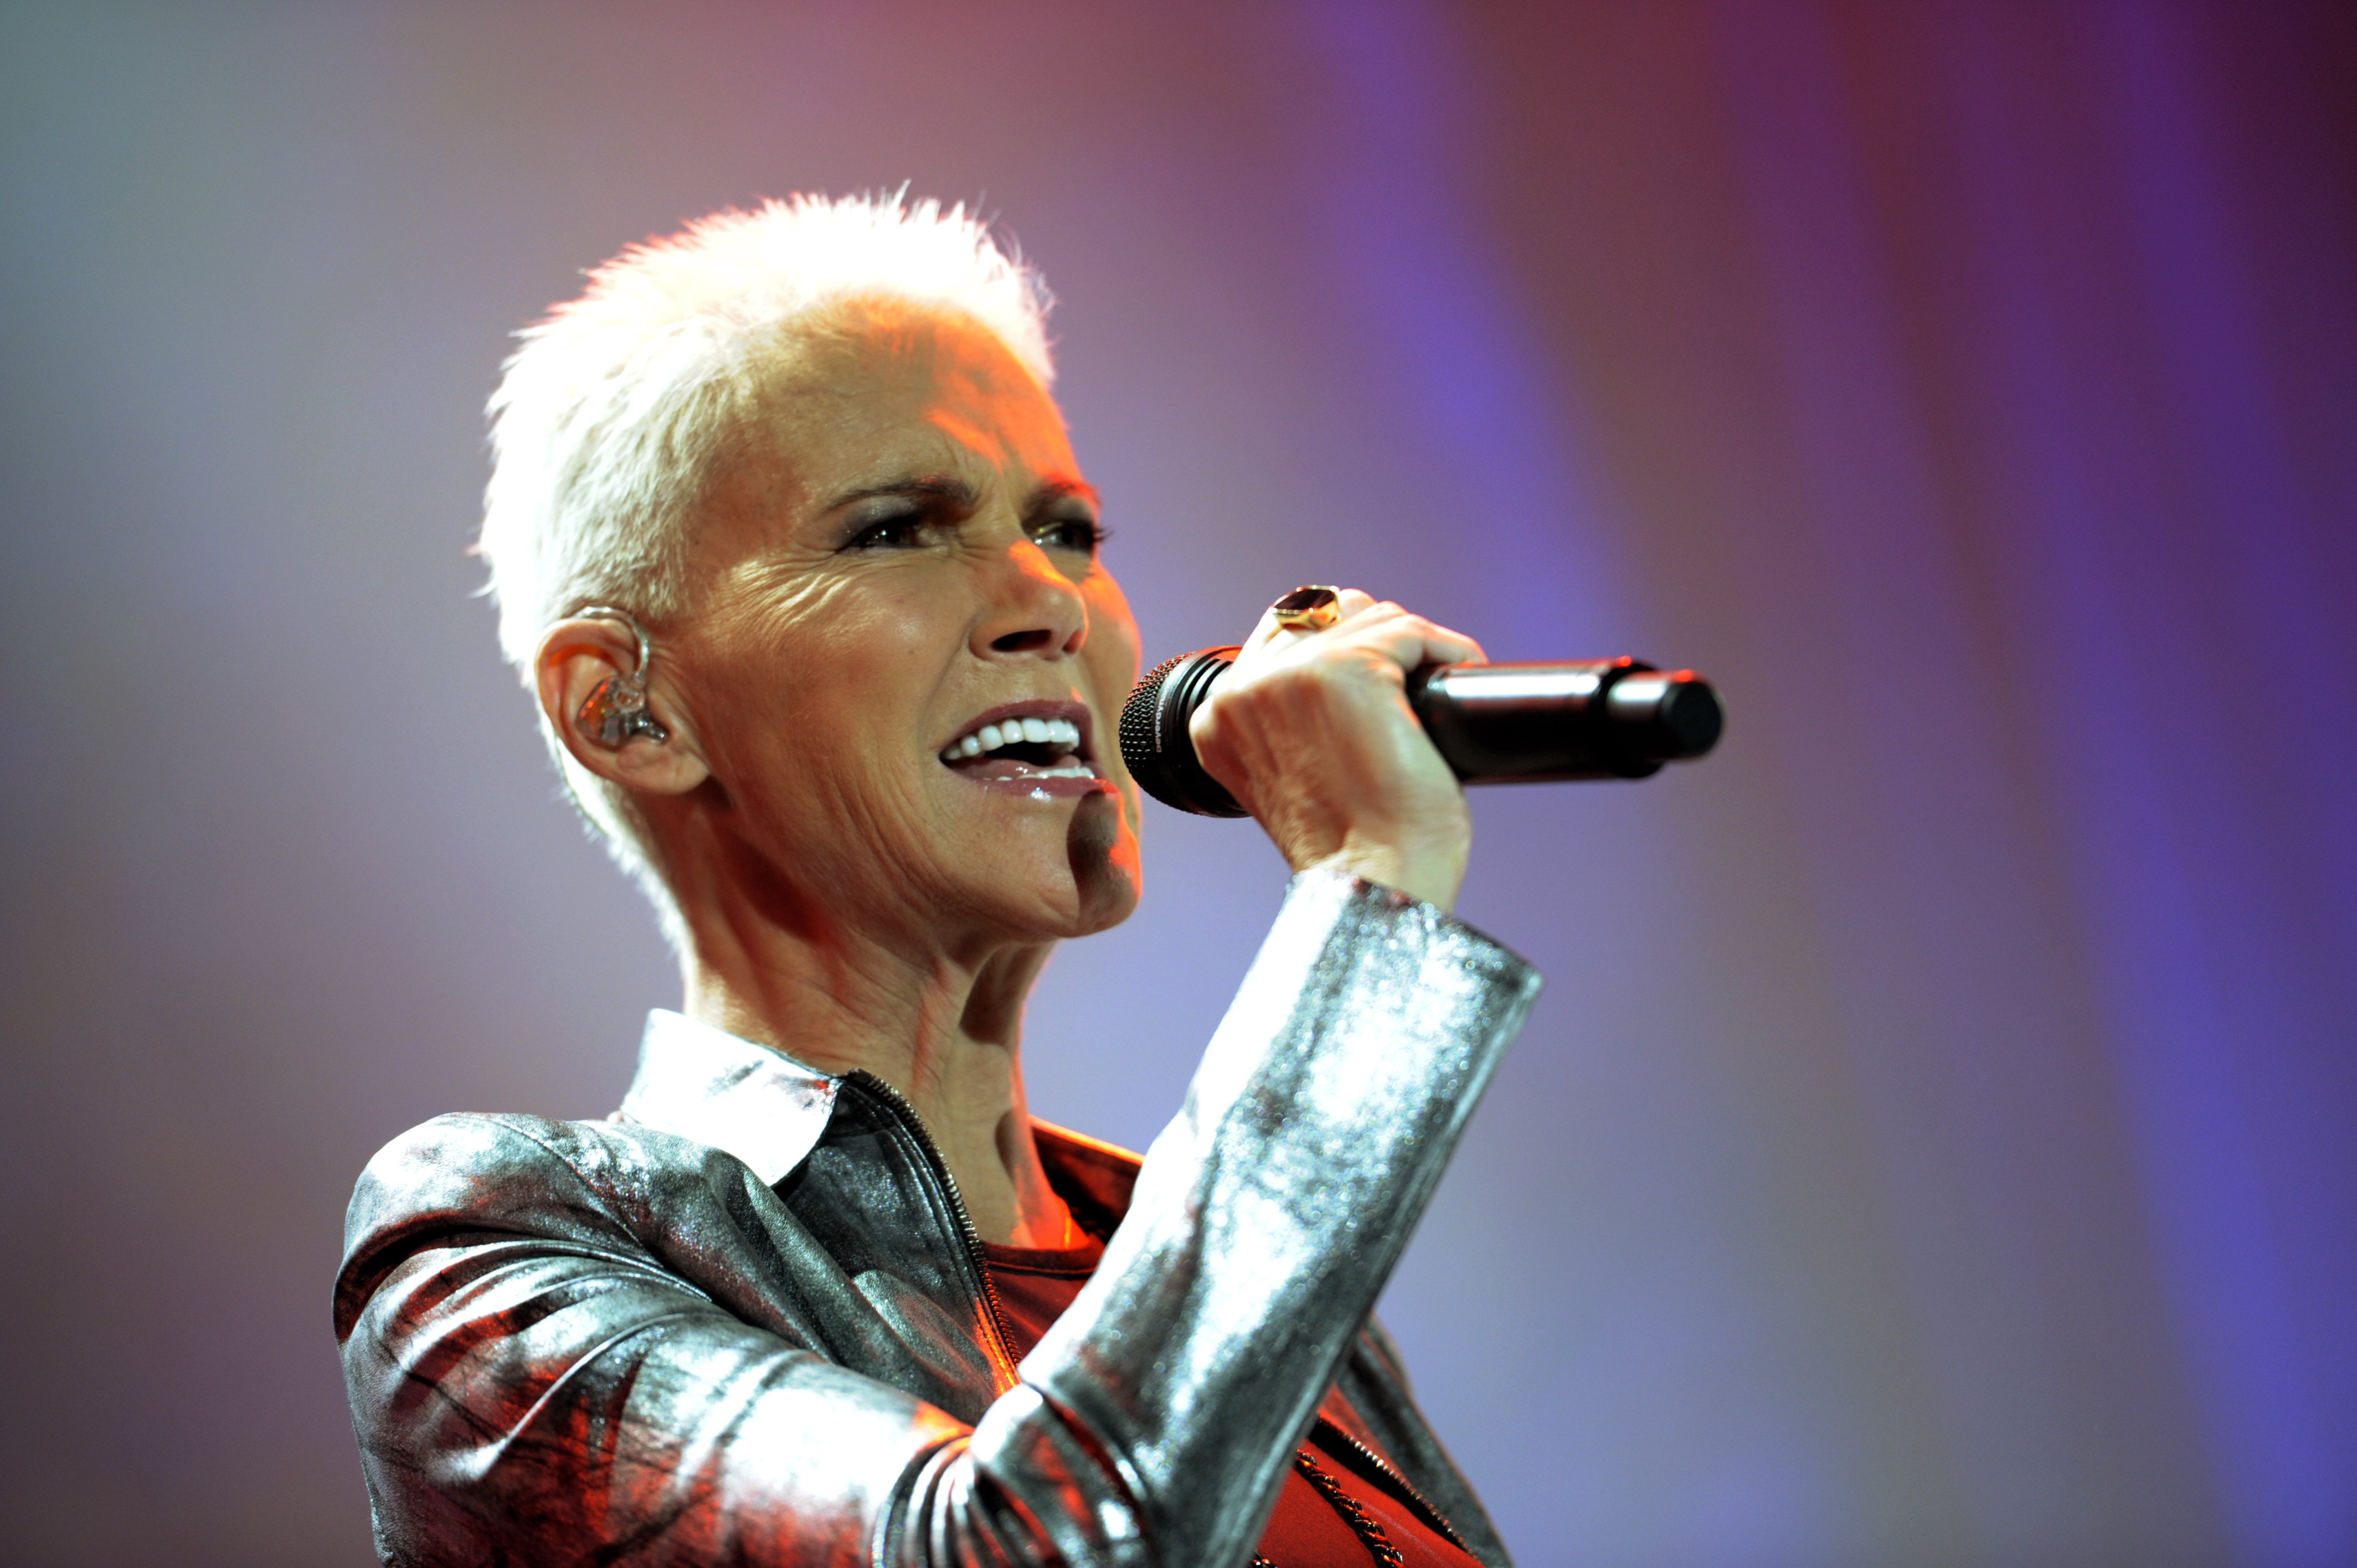 Marie Fredriksson of Roxette performs on stage at the Koenig-Pilsener-Arena on October 19, 2011 | Photo: GettyImages